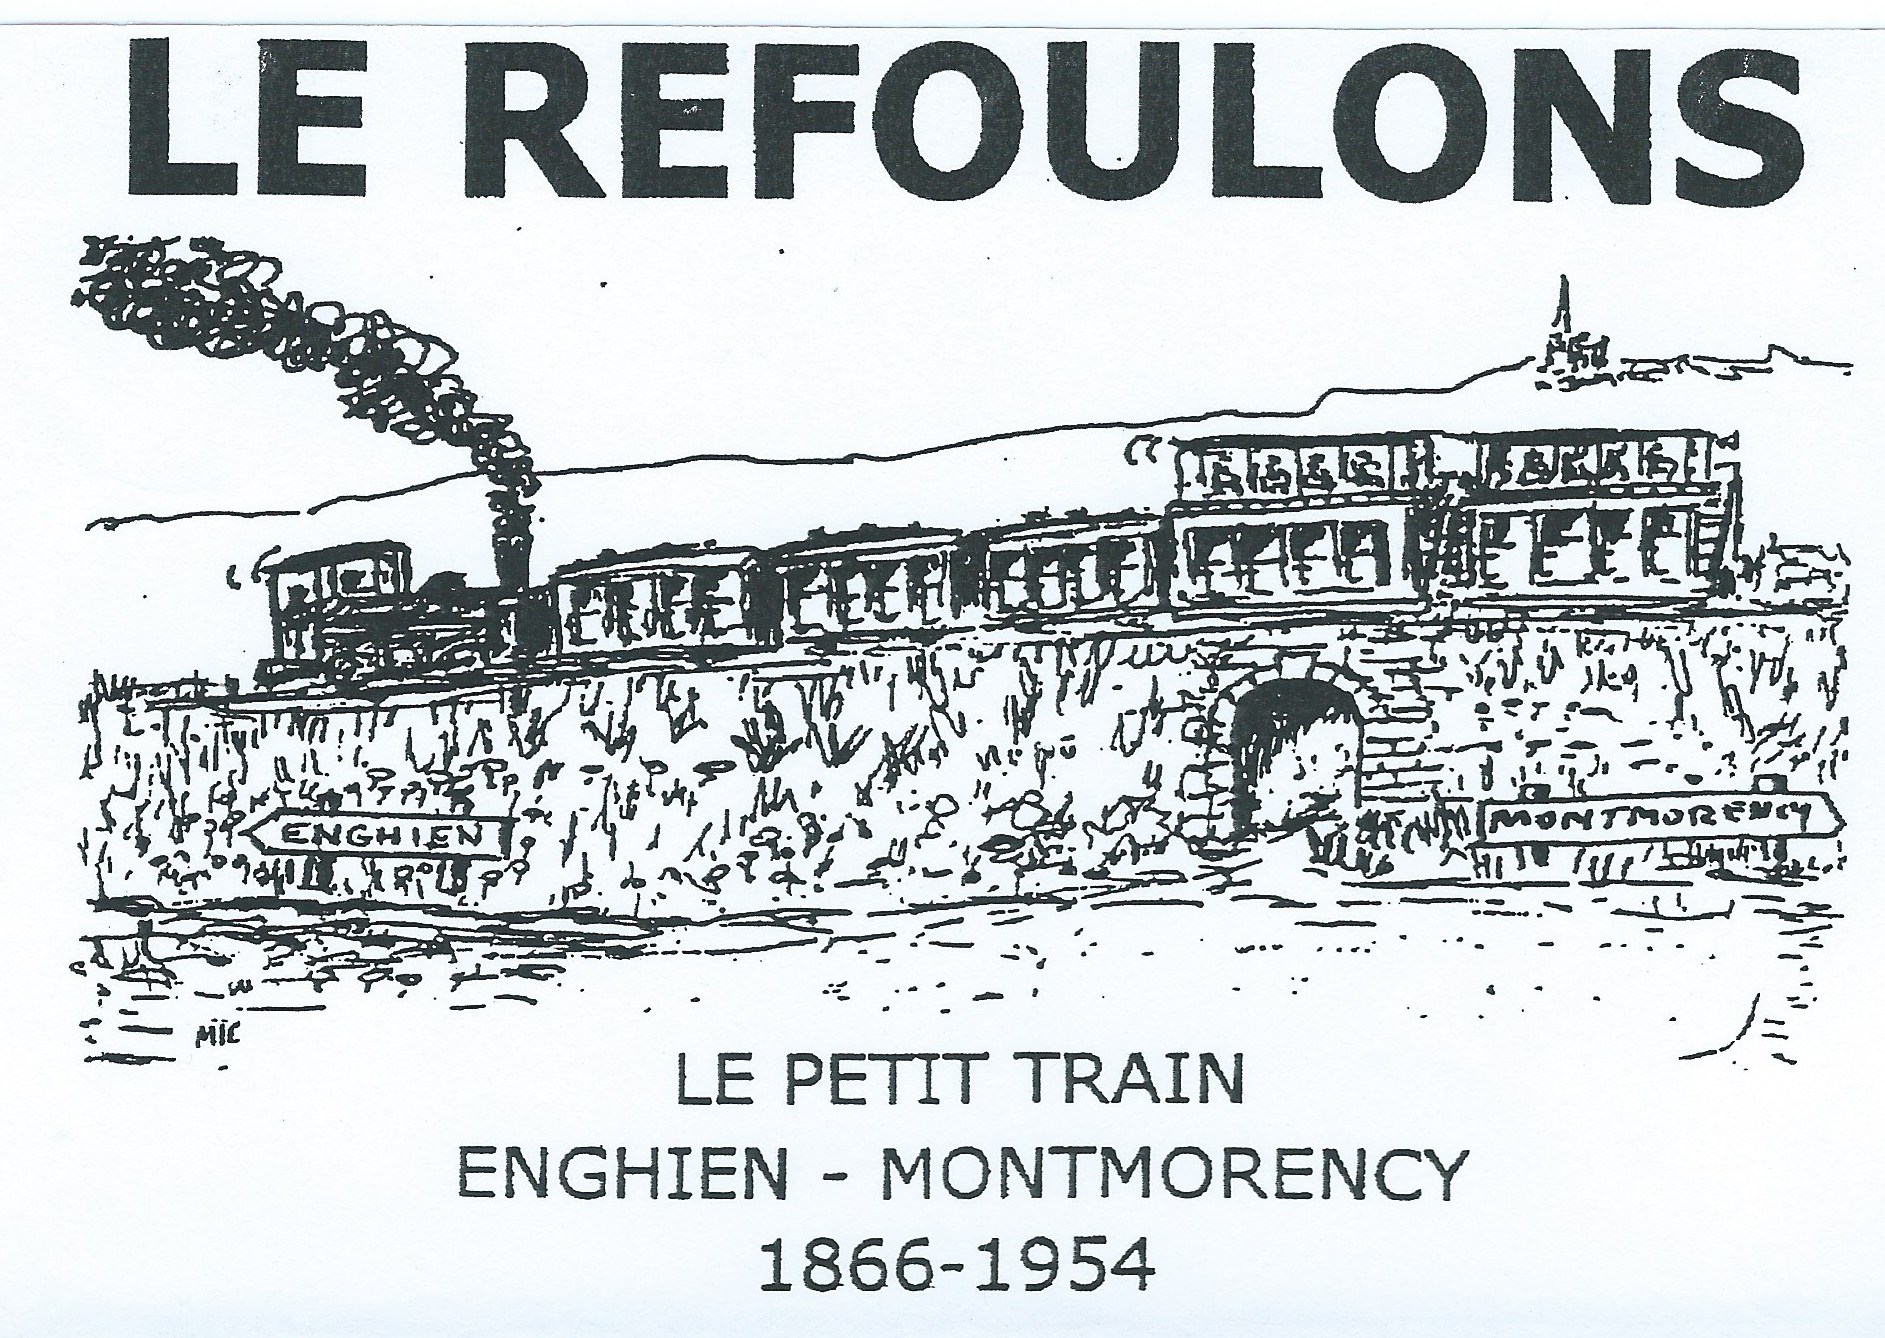 Le refoulons